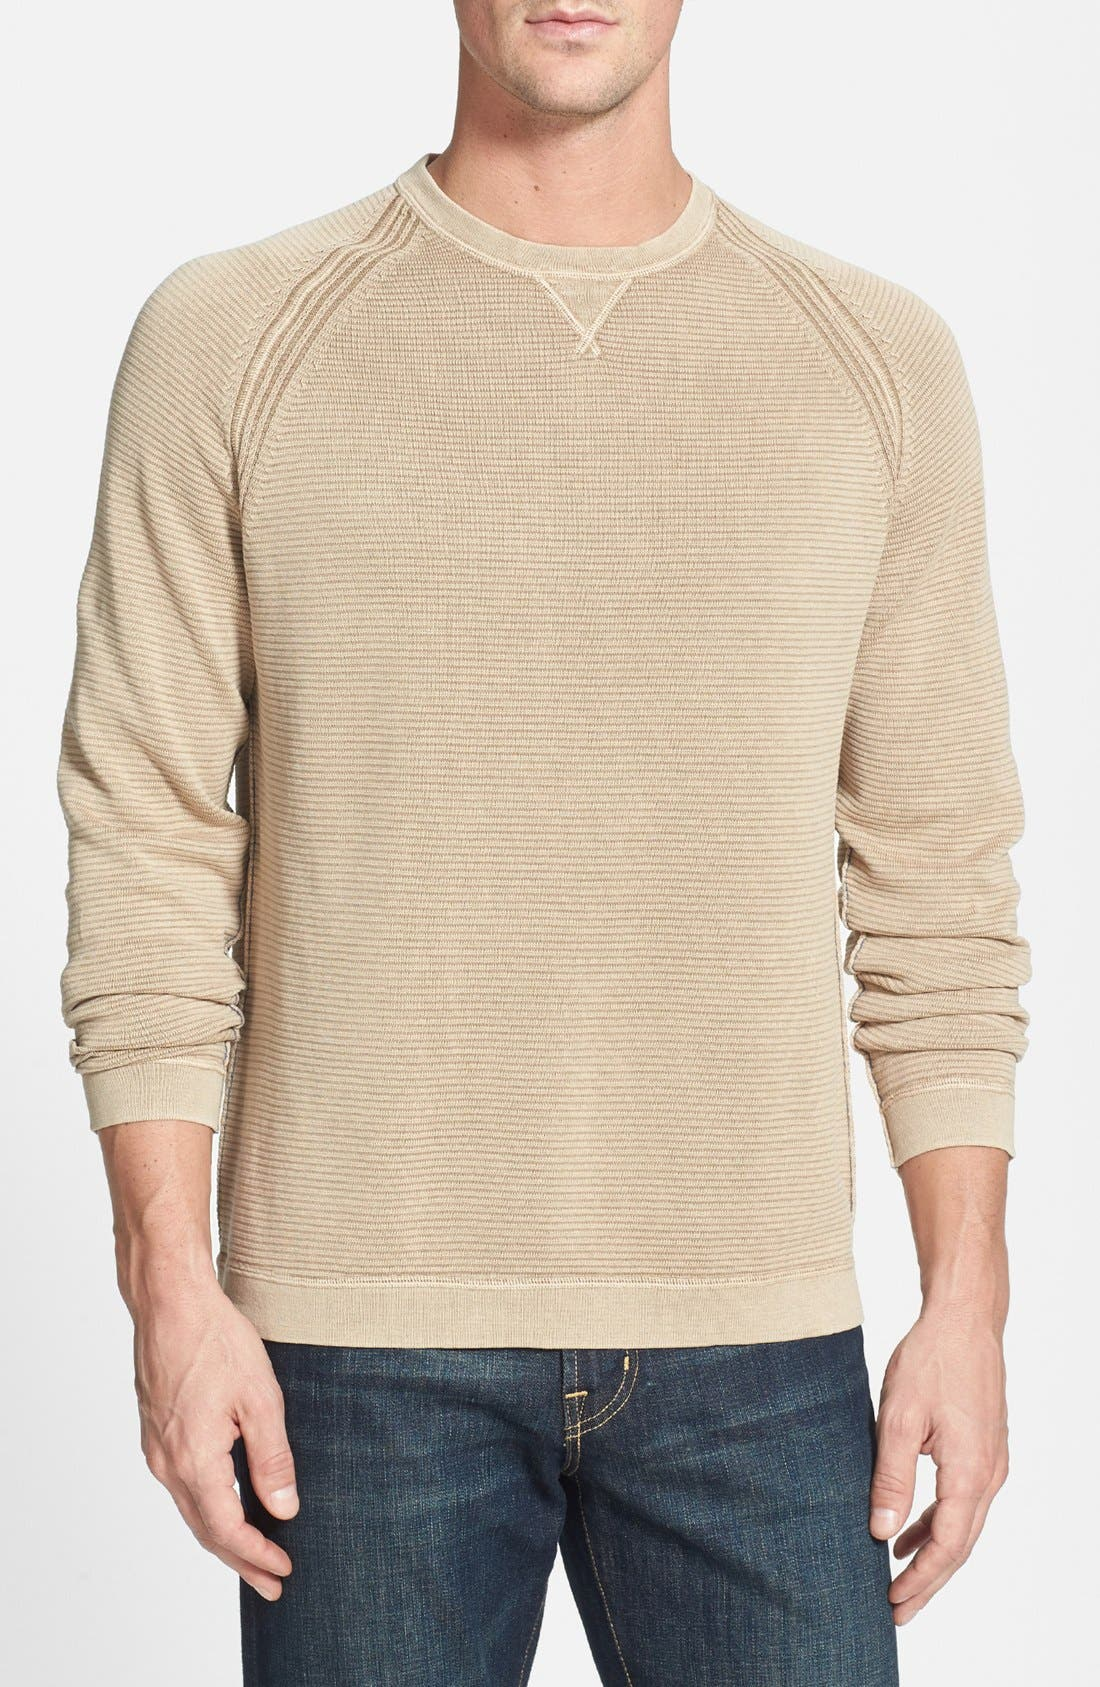 Alternate Image 1 Selected - Tommy Bahama 'Beachcomber' Sweater